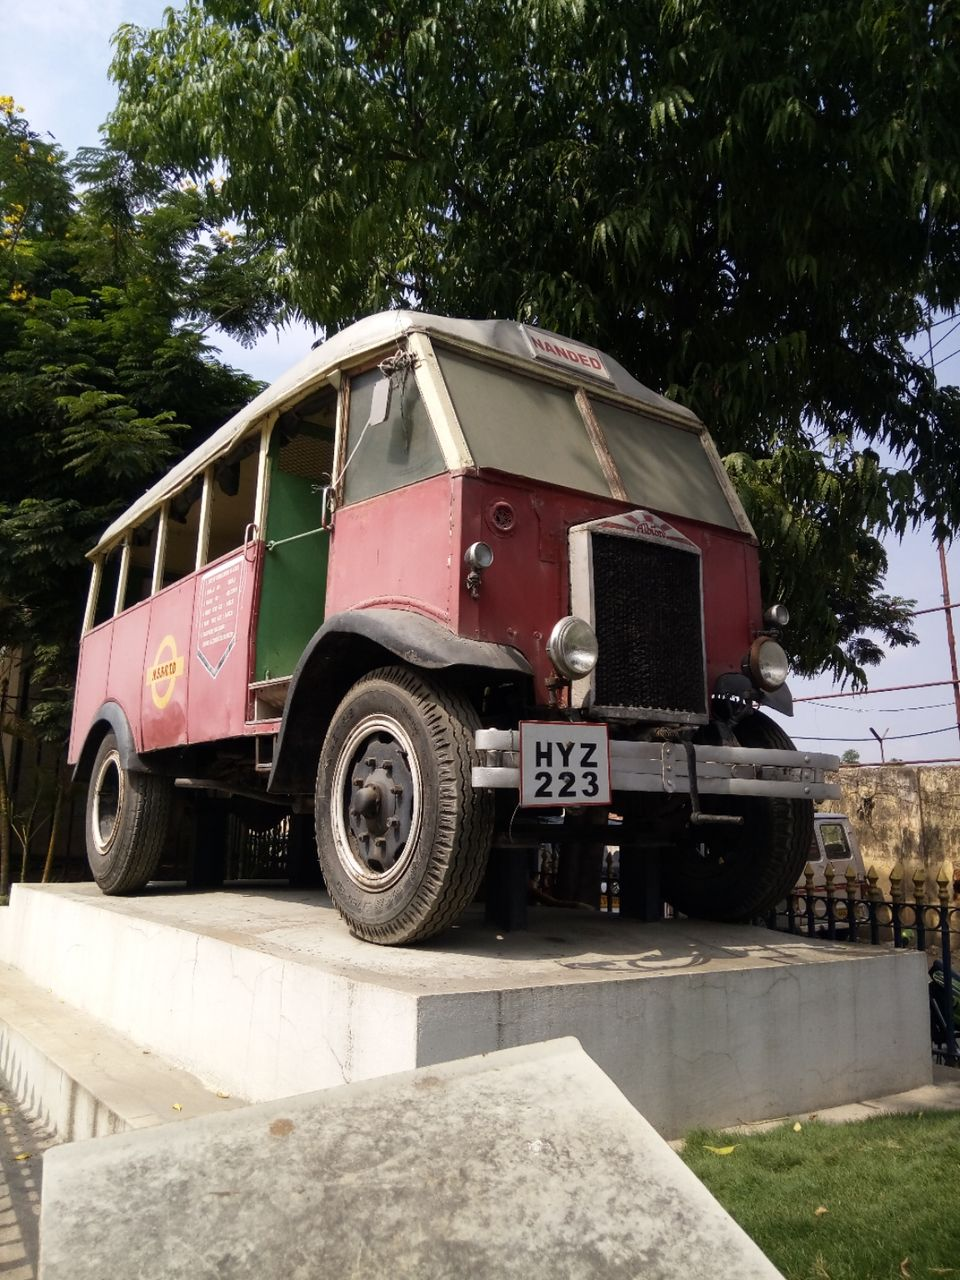 Photos of HYZ 223 – An interesting Story of the History of State Run Buses of Hyderabad. 1/1 by Karim S A